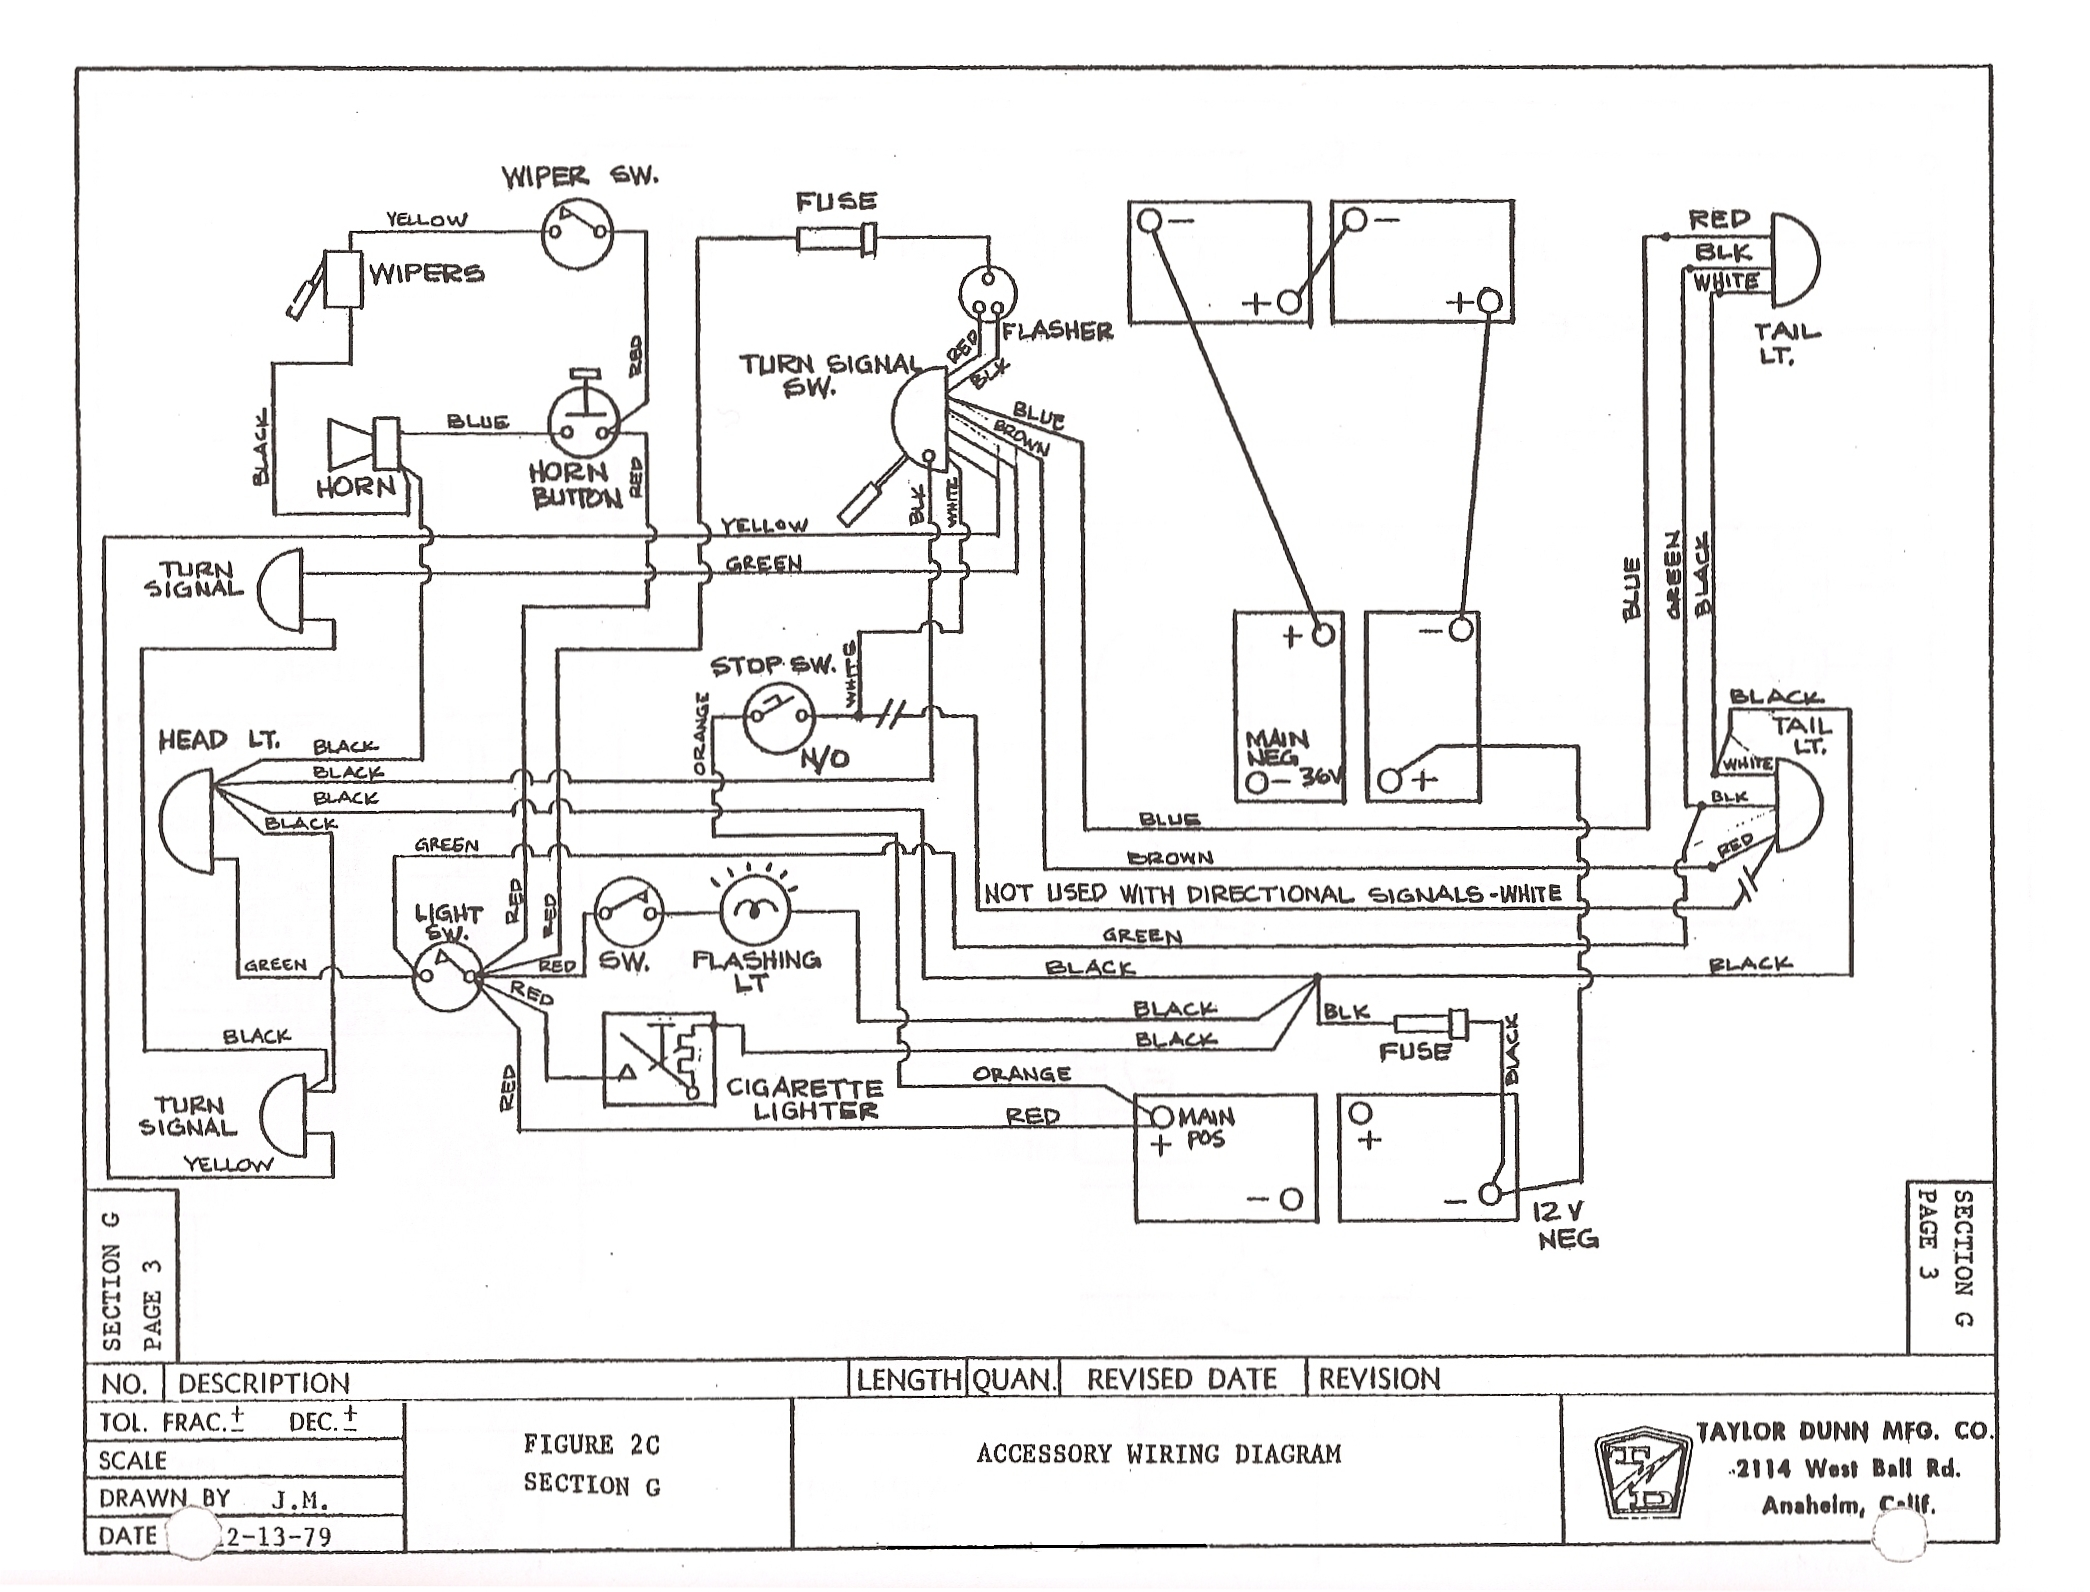 Enjoyable Wrg 5324 Belarus 250As Tractor Wiring Diagram Wiring Cloud Waroletkolfr09Org